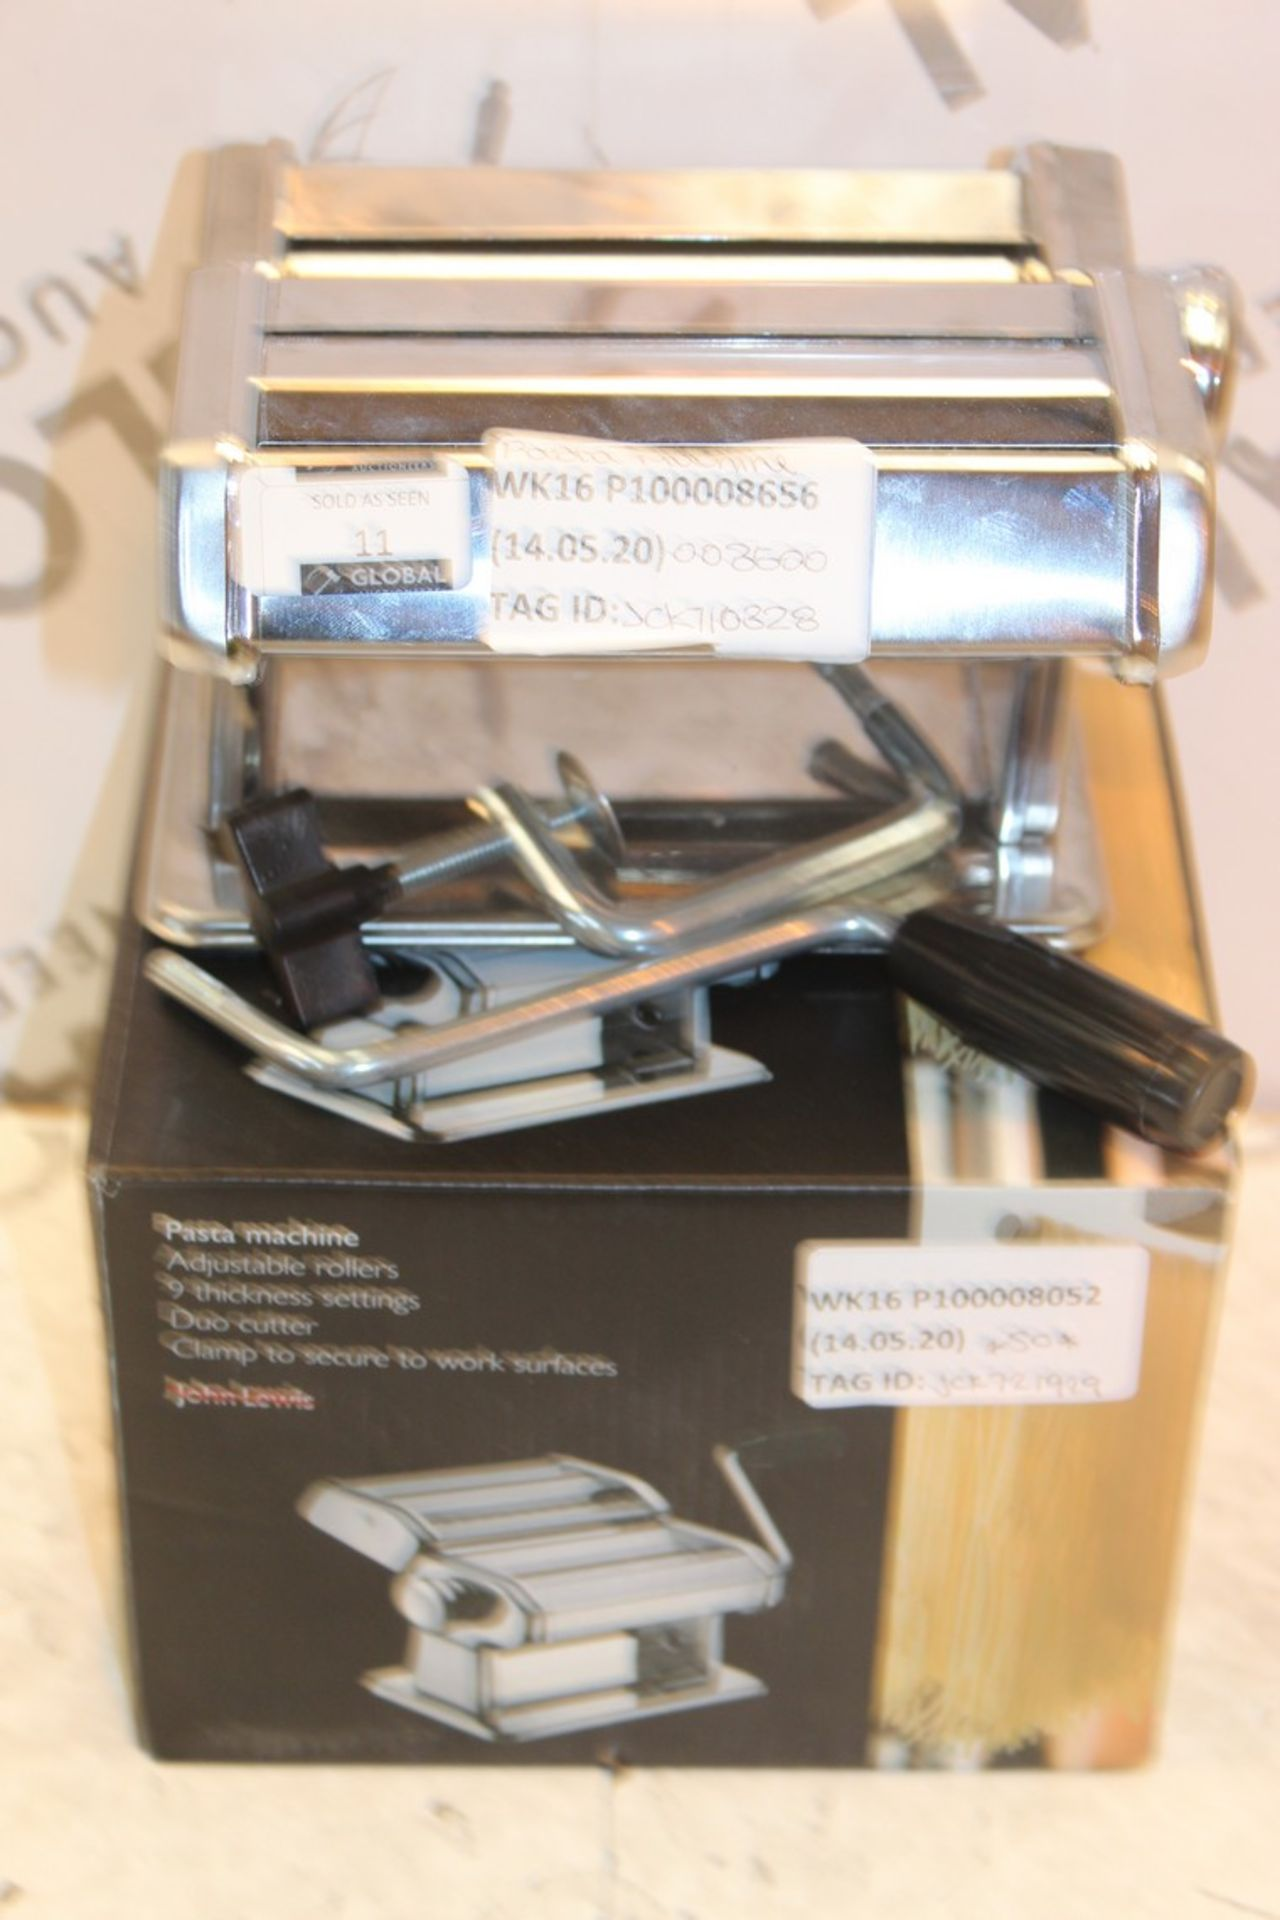 Lot 11 - Assorted Boxed John Lewis & Partners Stainless Steel Pasta Machine RRP £50 (710328) (721929) (